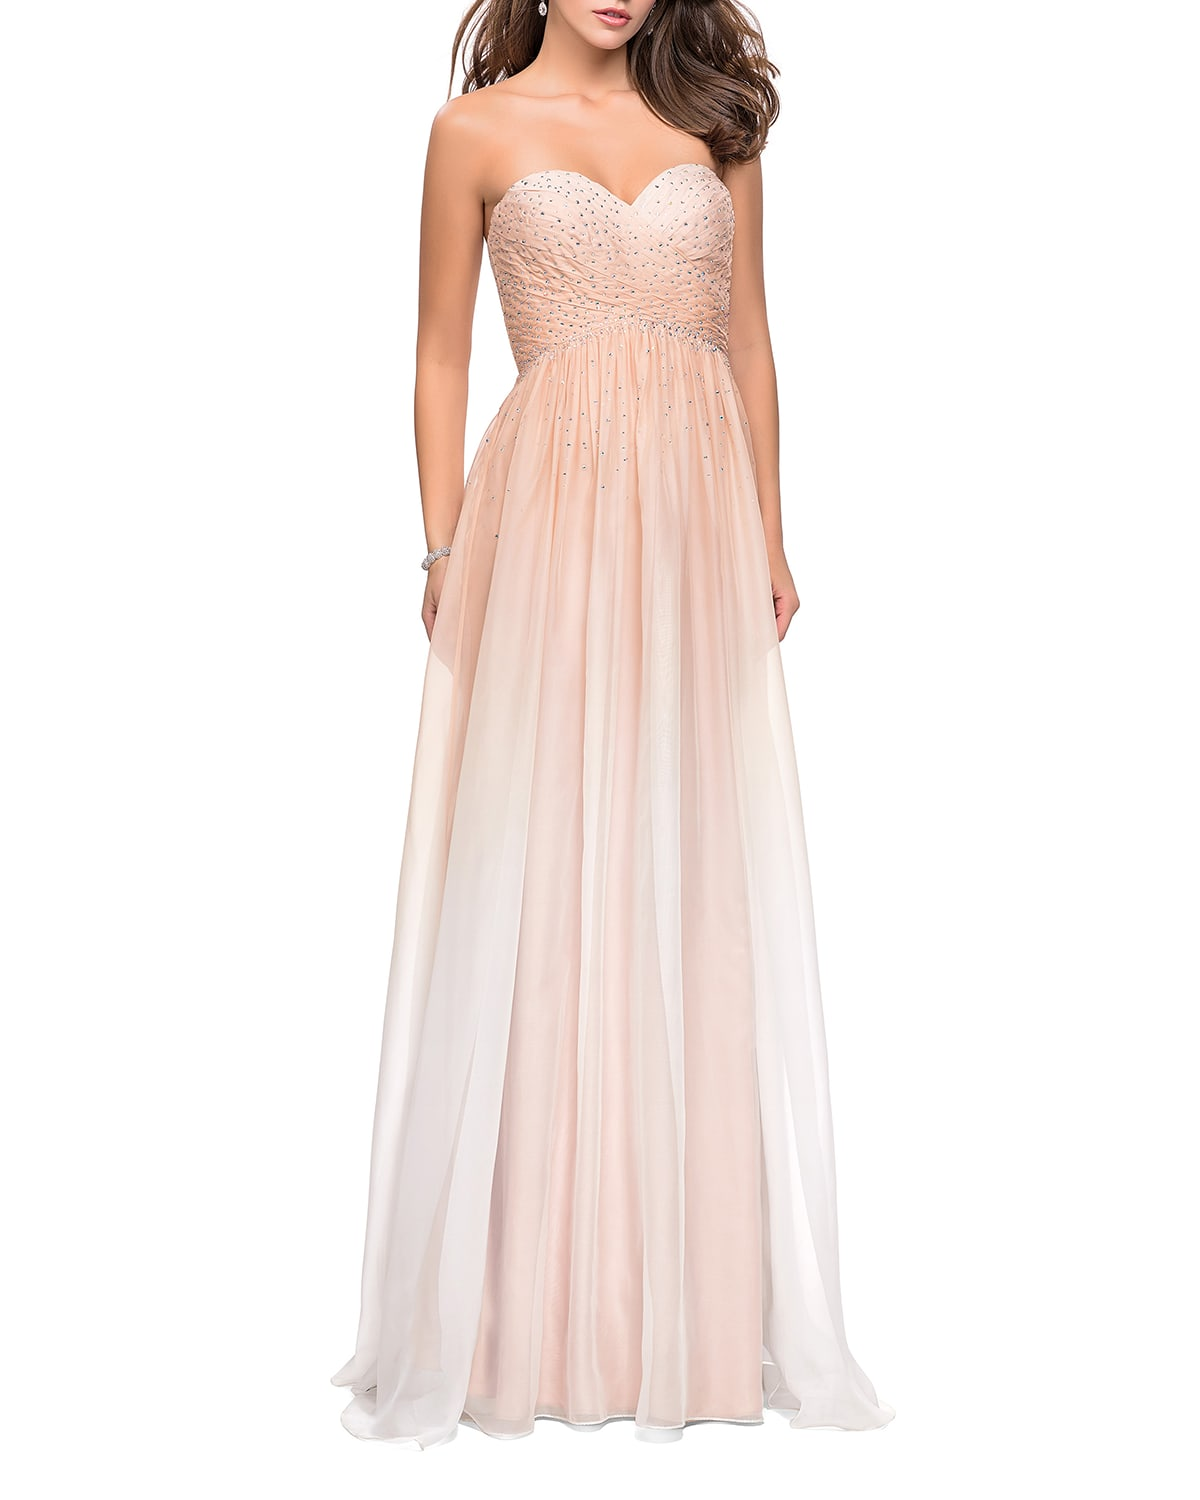 Ombre Rhinestone Embellished Strapless Chiffon Gown